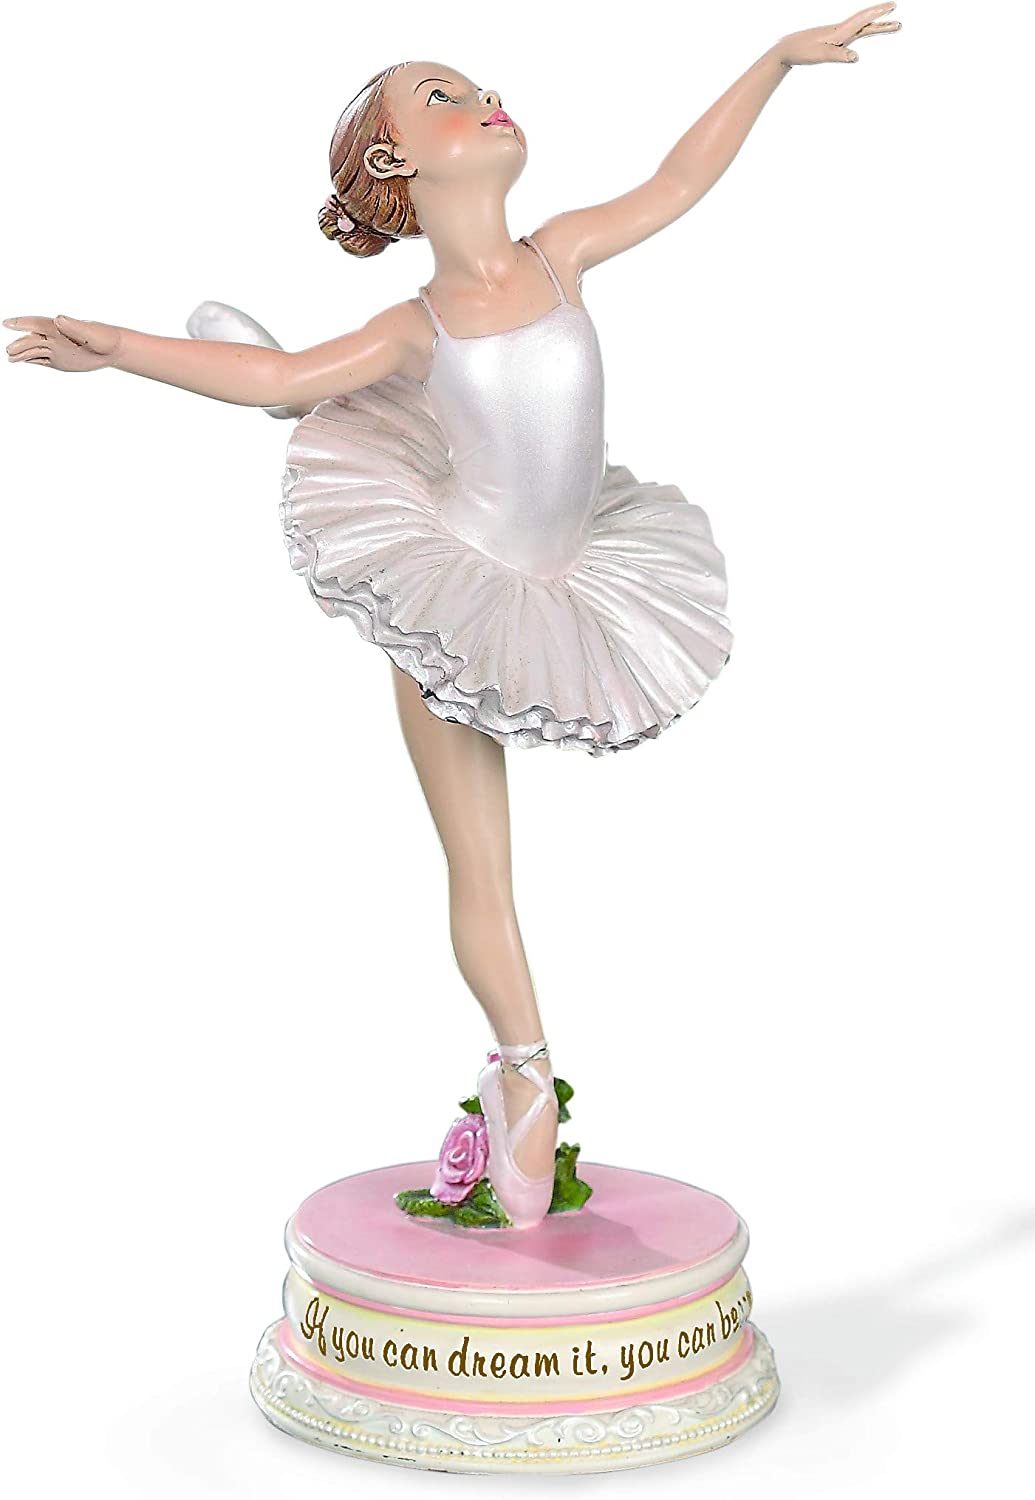 """Joseph's Studio by Roman - Ballerina Figure, Ballet Collection, 7"""" H, Resin and Stone, Decoration, Collection, Durable, Long Lasting, Collectible"""